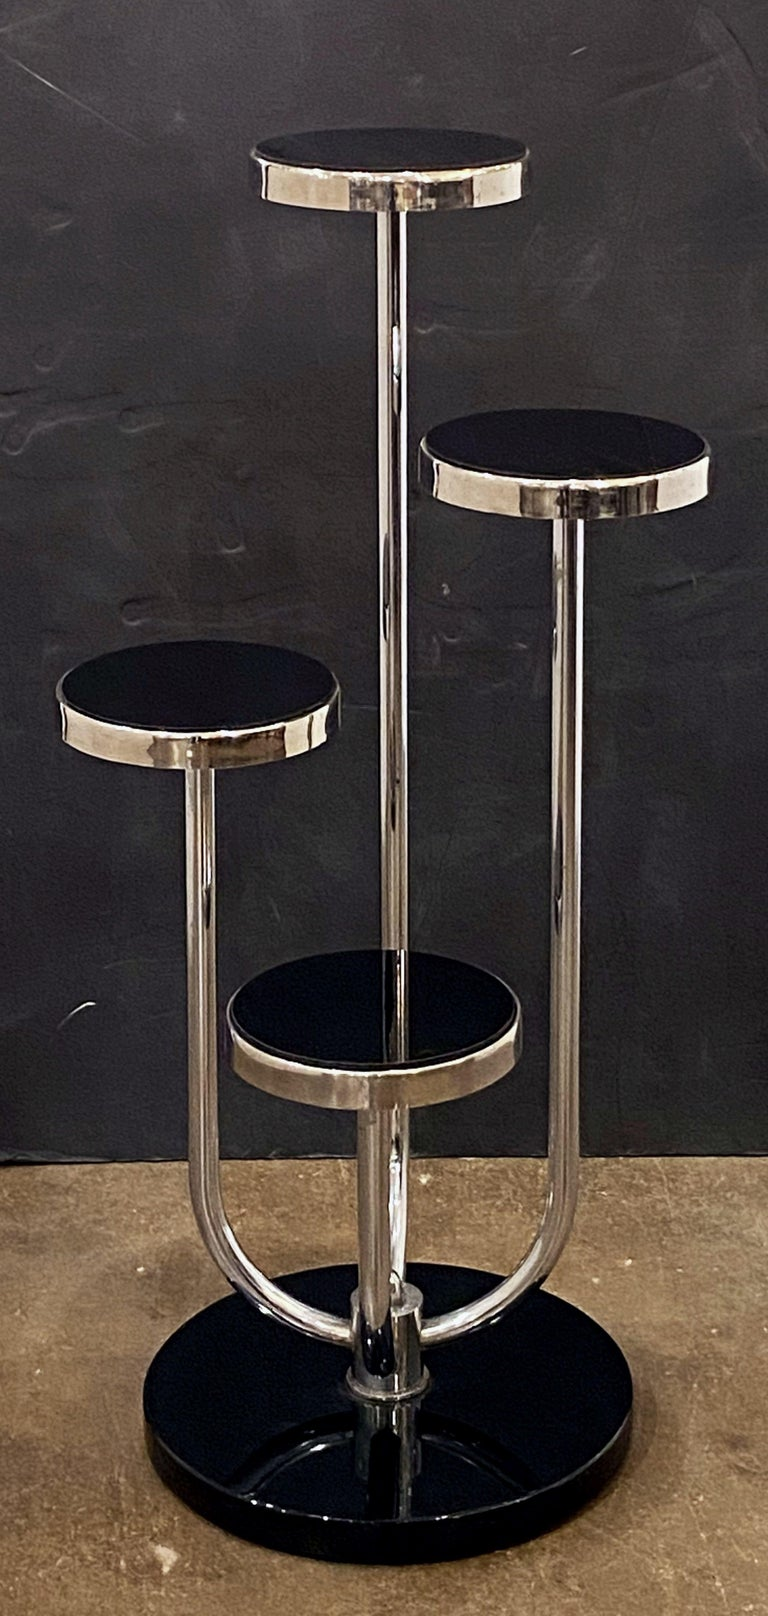 Pair of Czech Art Deco Étagères of Chrome and Smoked Glass 'Priced Individually' For Sale 3